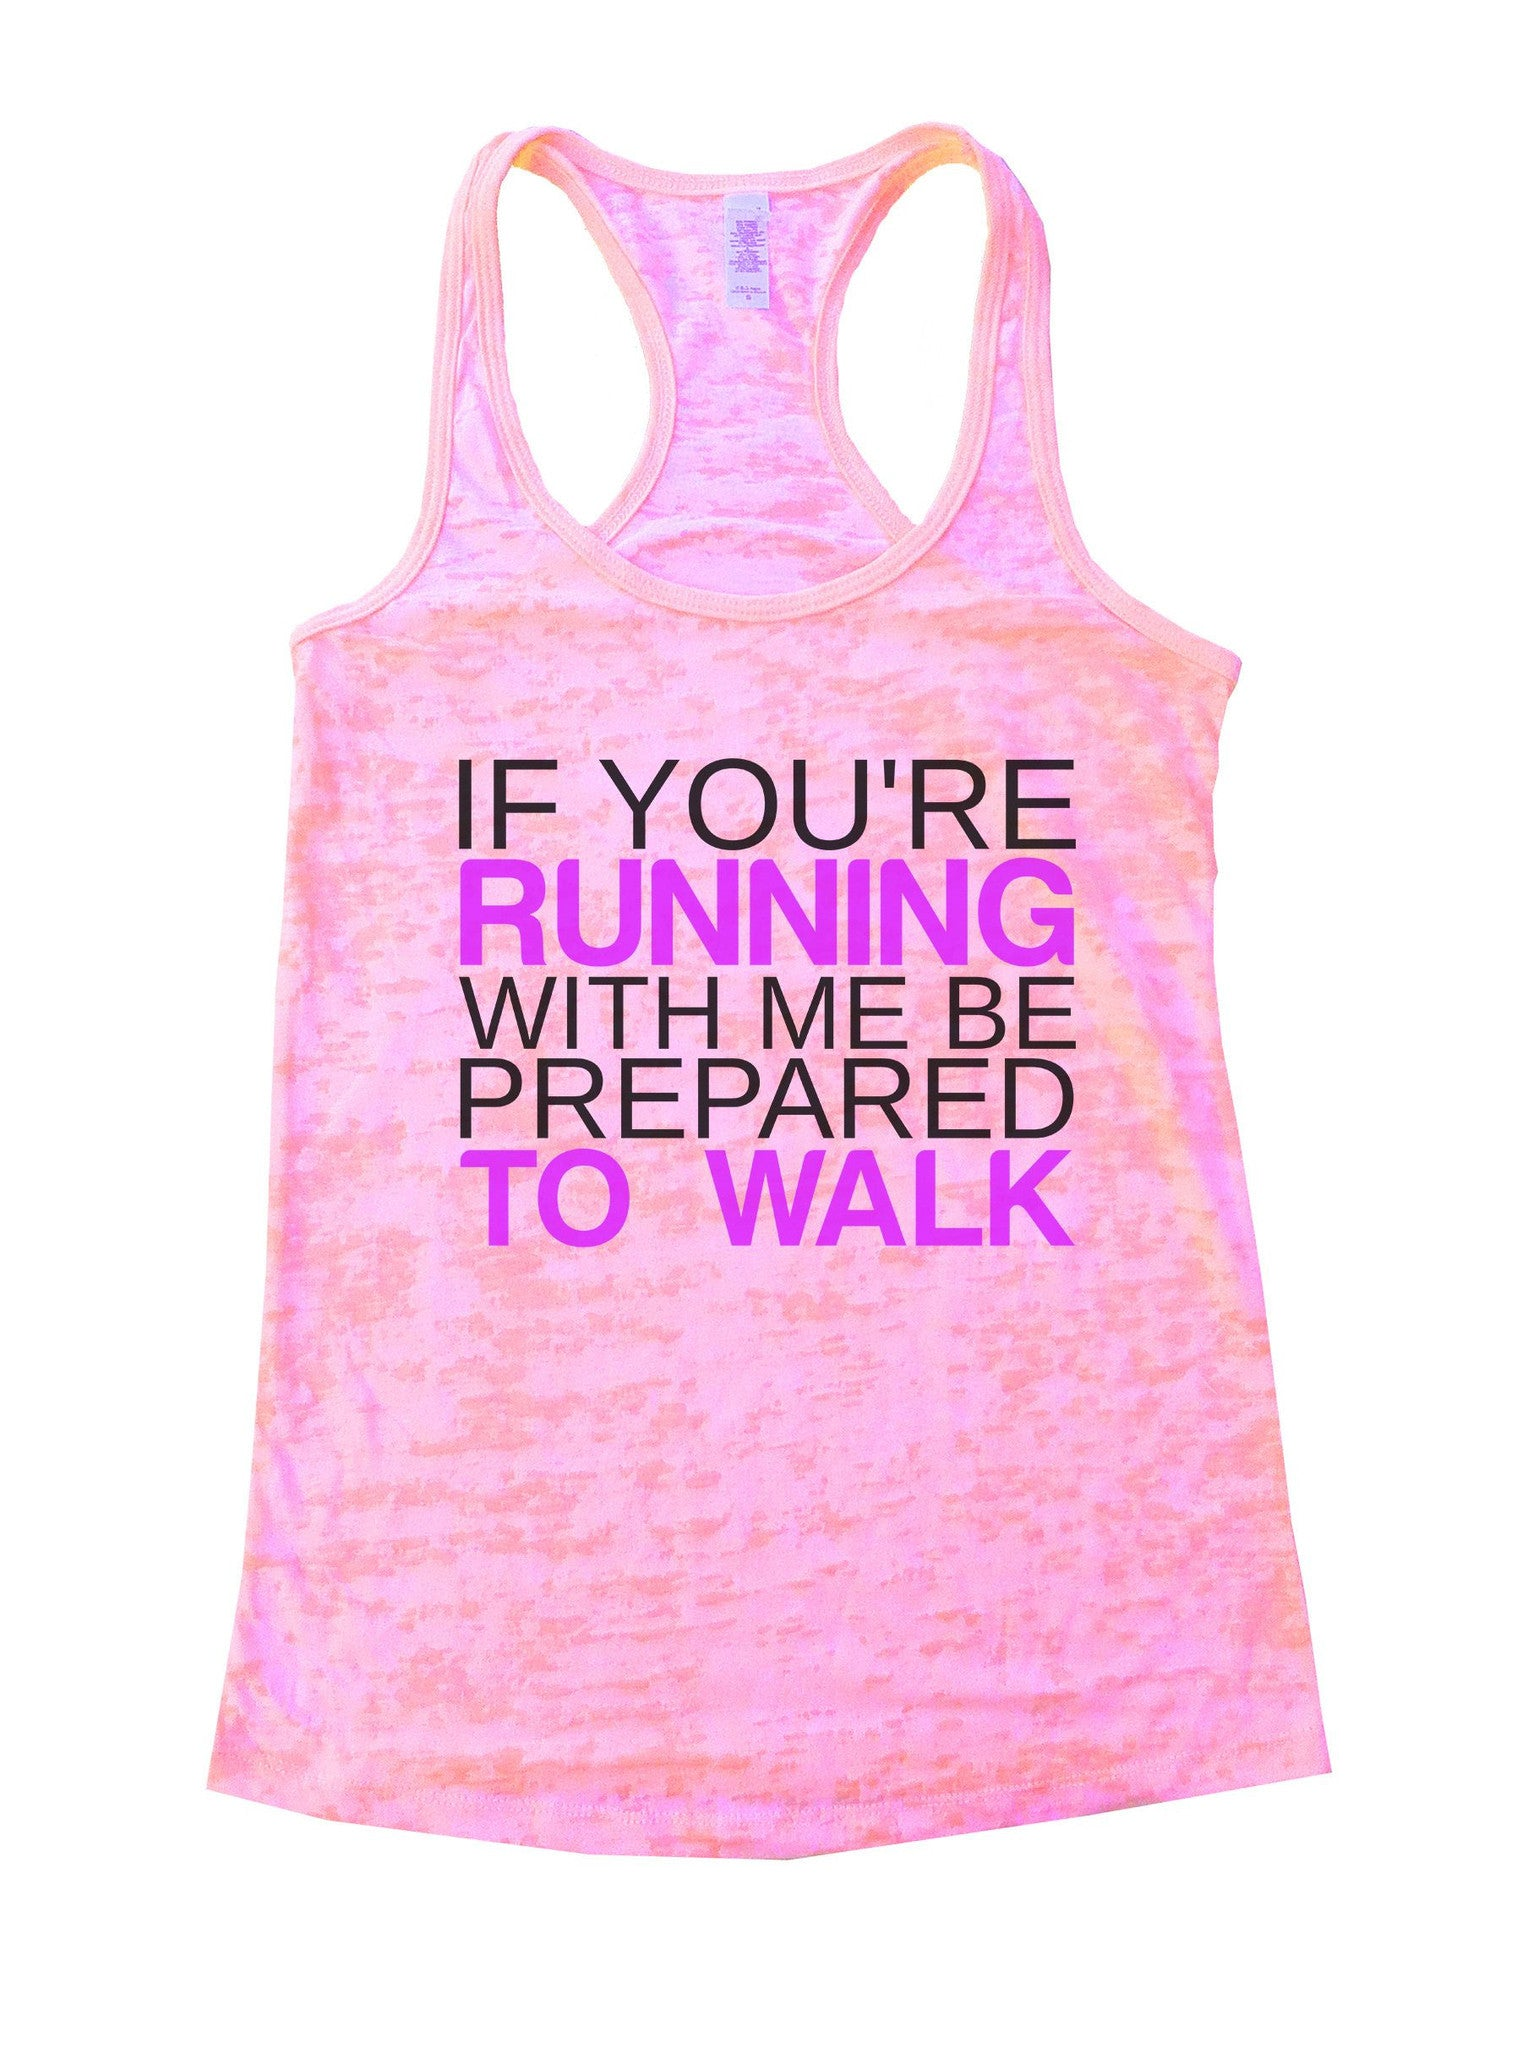 If You're Running With Me Be Prepared To Walk Burnout Tank Top By BurnoutTankTops.com - 858 - Funny Shirts Tank Tops Burnouts and Triblends  - 1